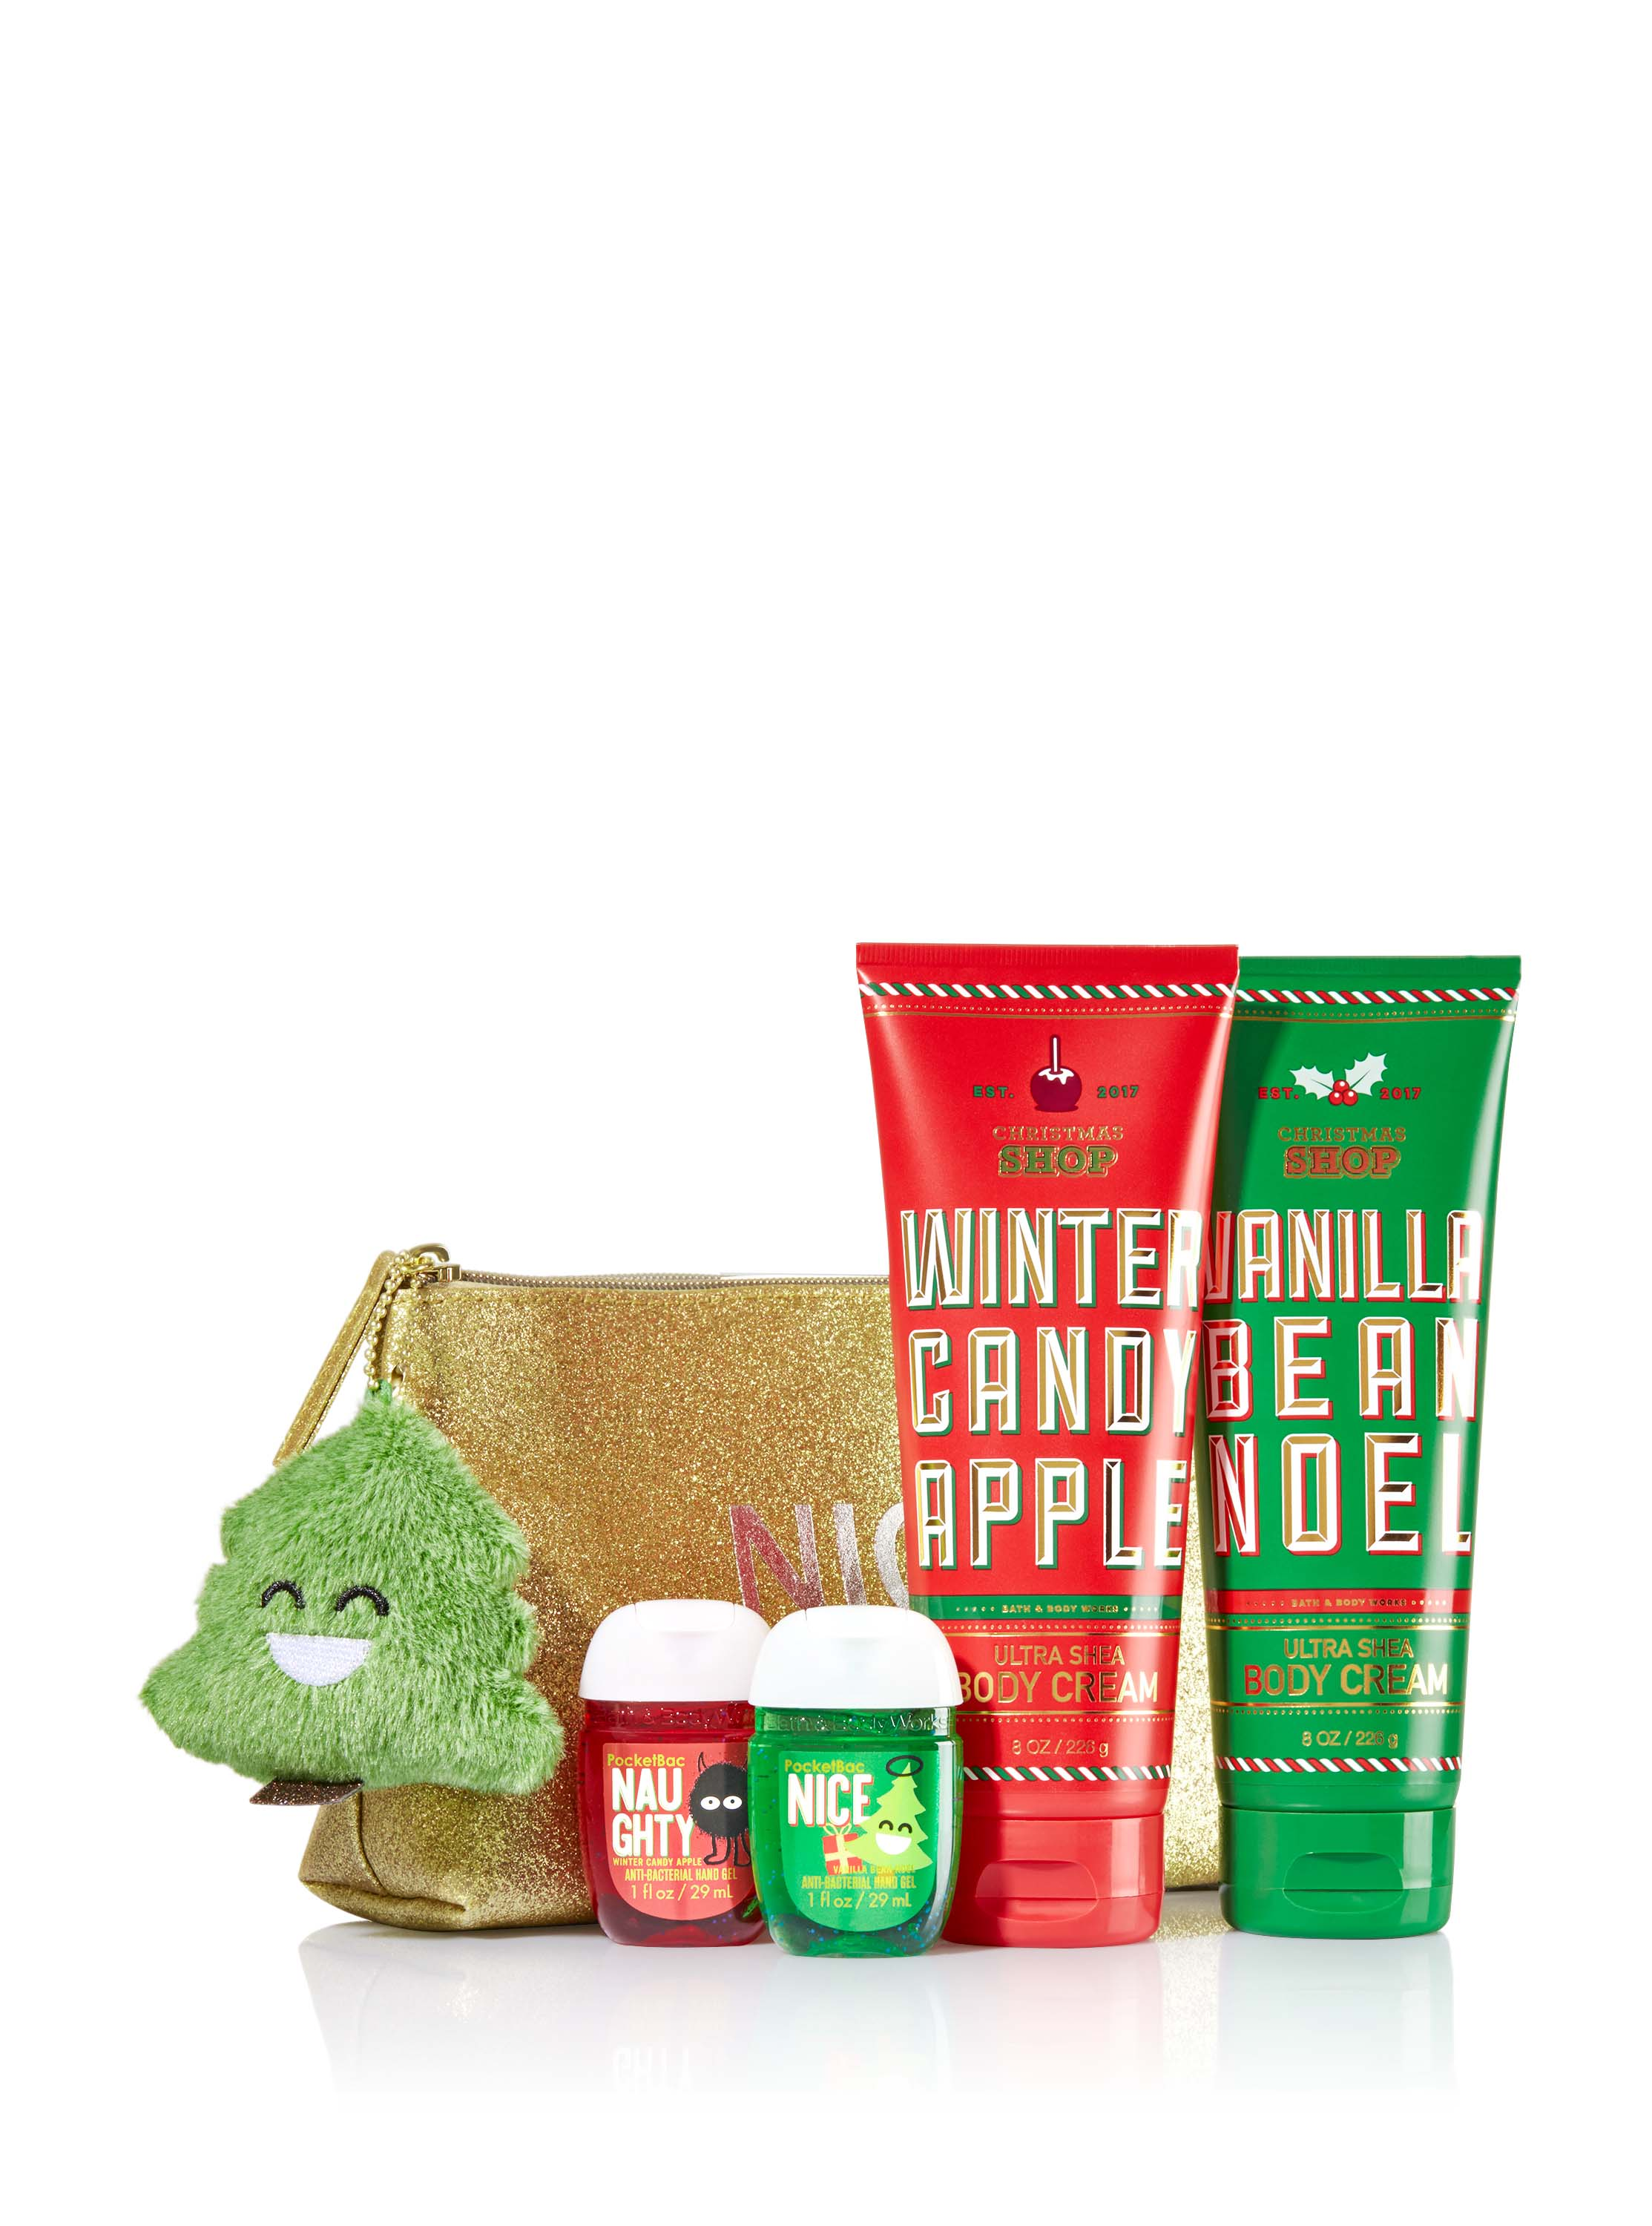 15 Bath & Body Works holiday products to shop for this Christmas ...